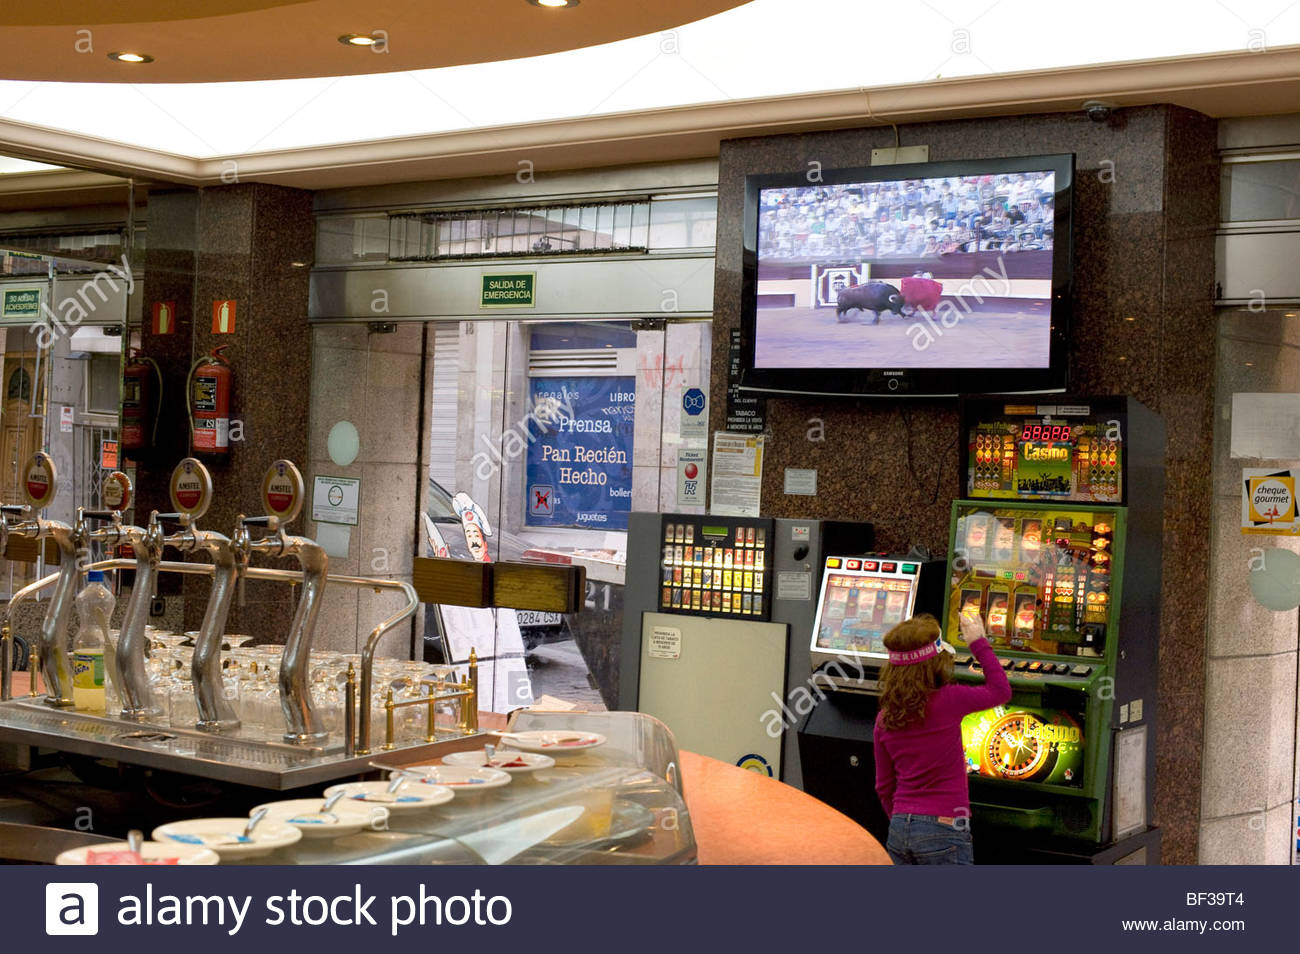 A Bar in Madrid showing bullfighting on a television screen and games machines - Stock Image